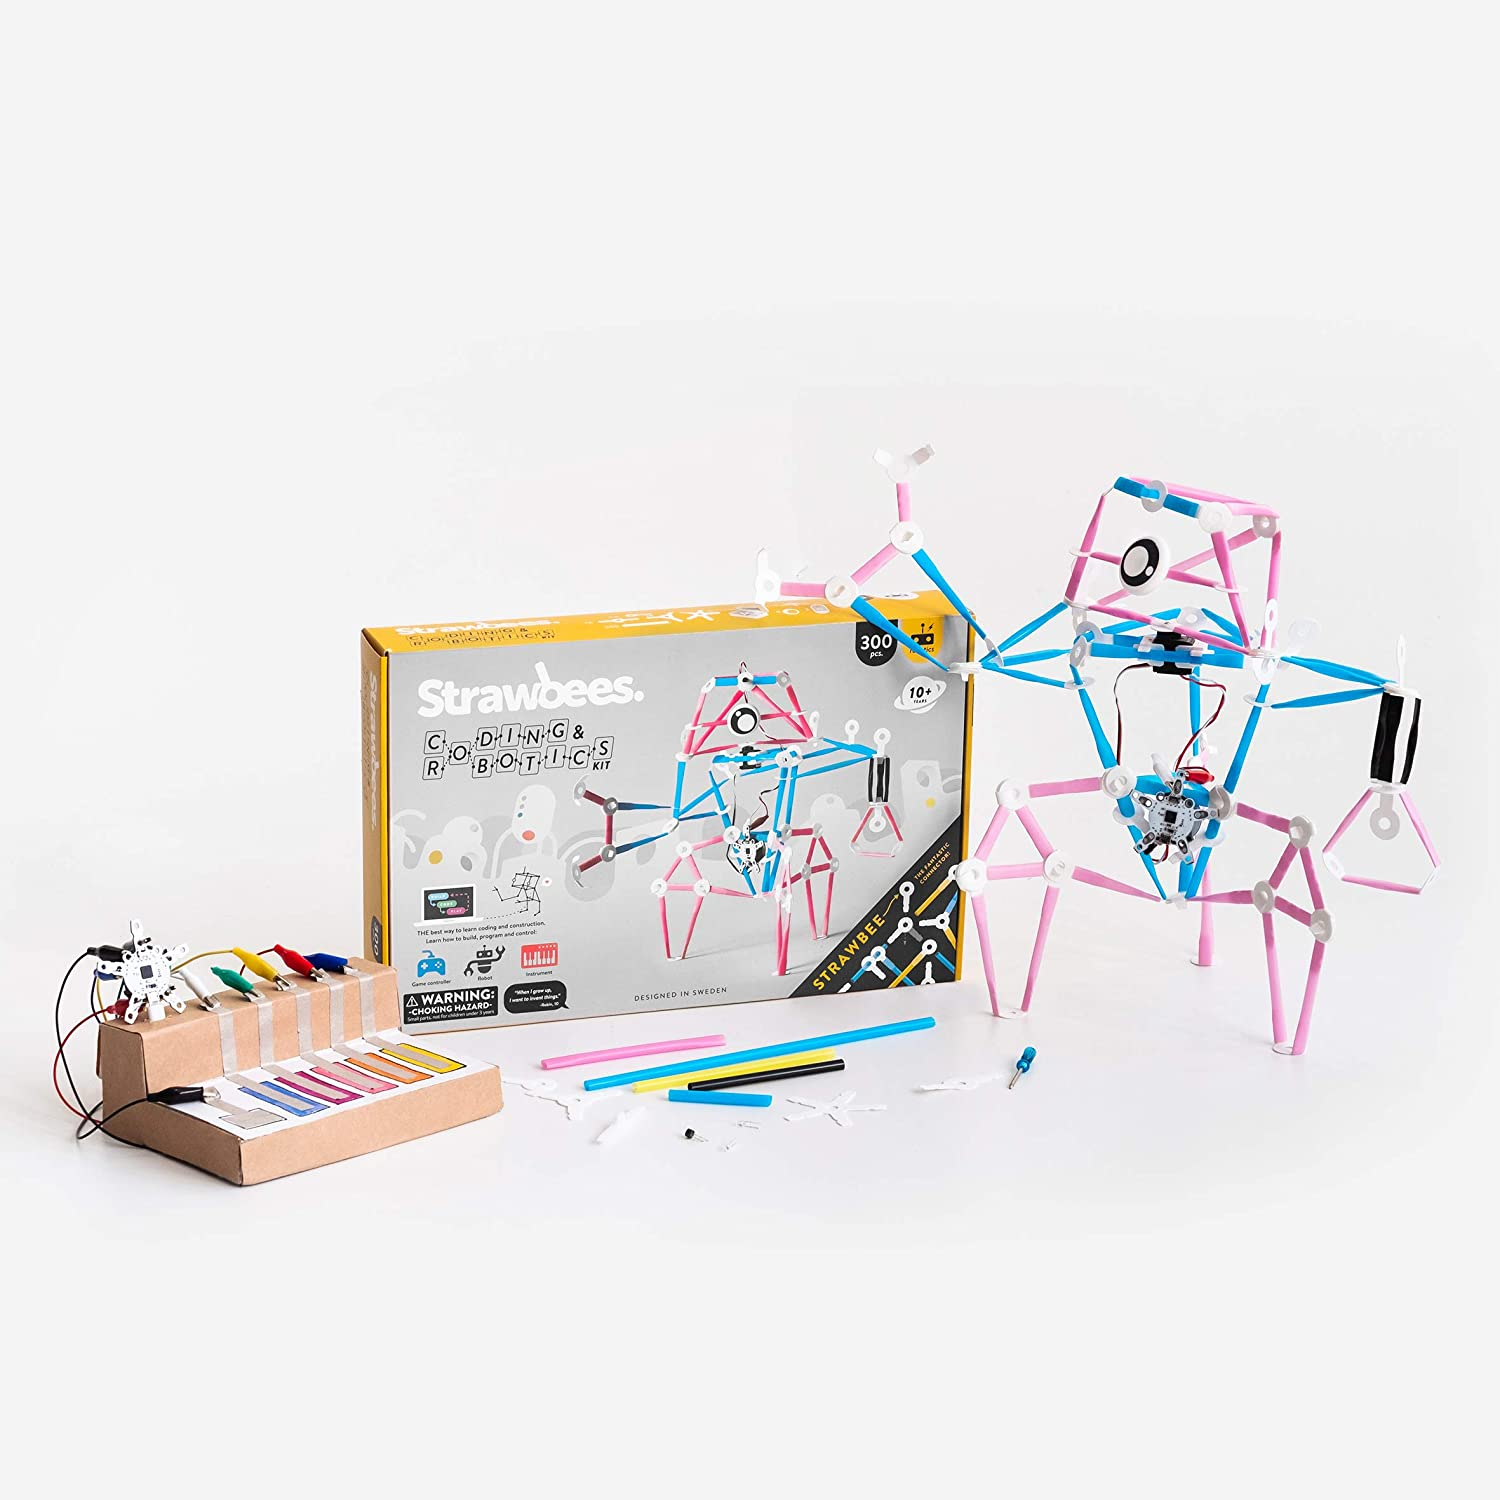 Strawbees Coding & Robotics Kit STEM Building and Programming Set, 300+ Pieces